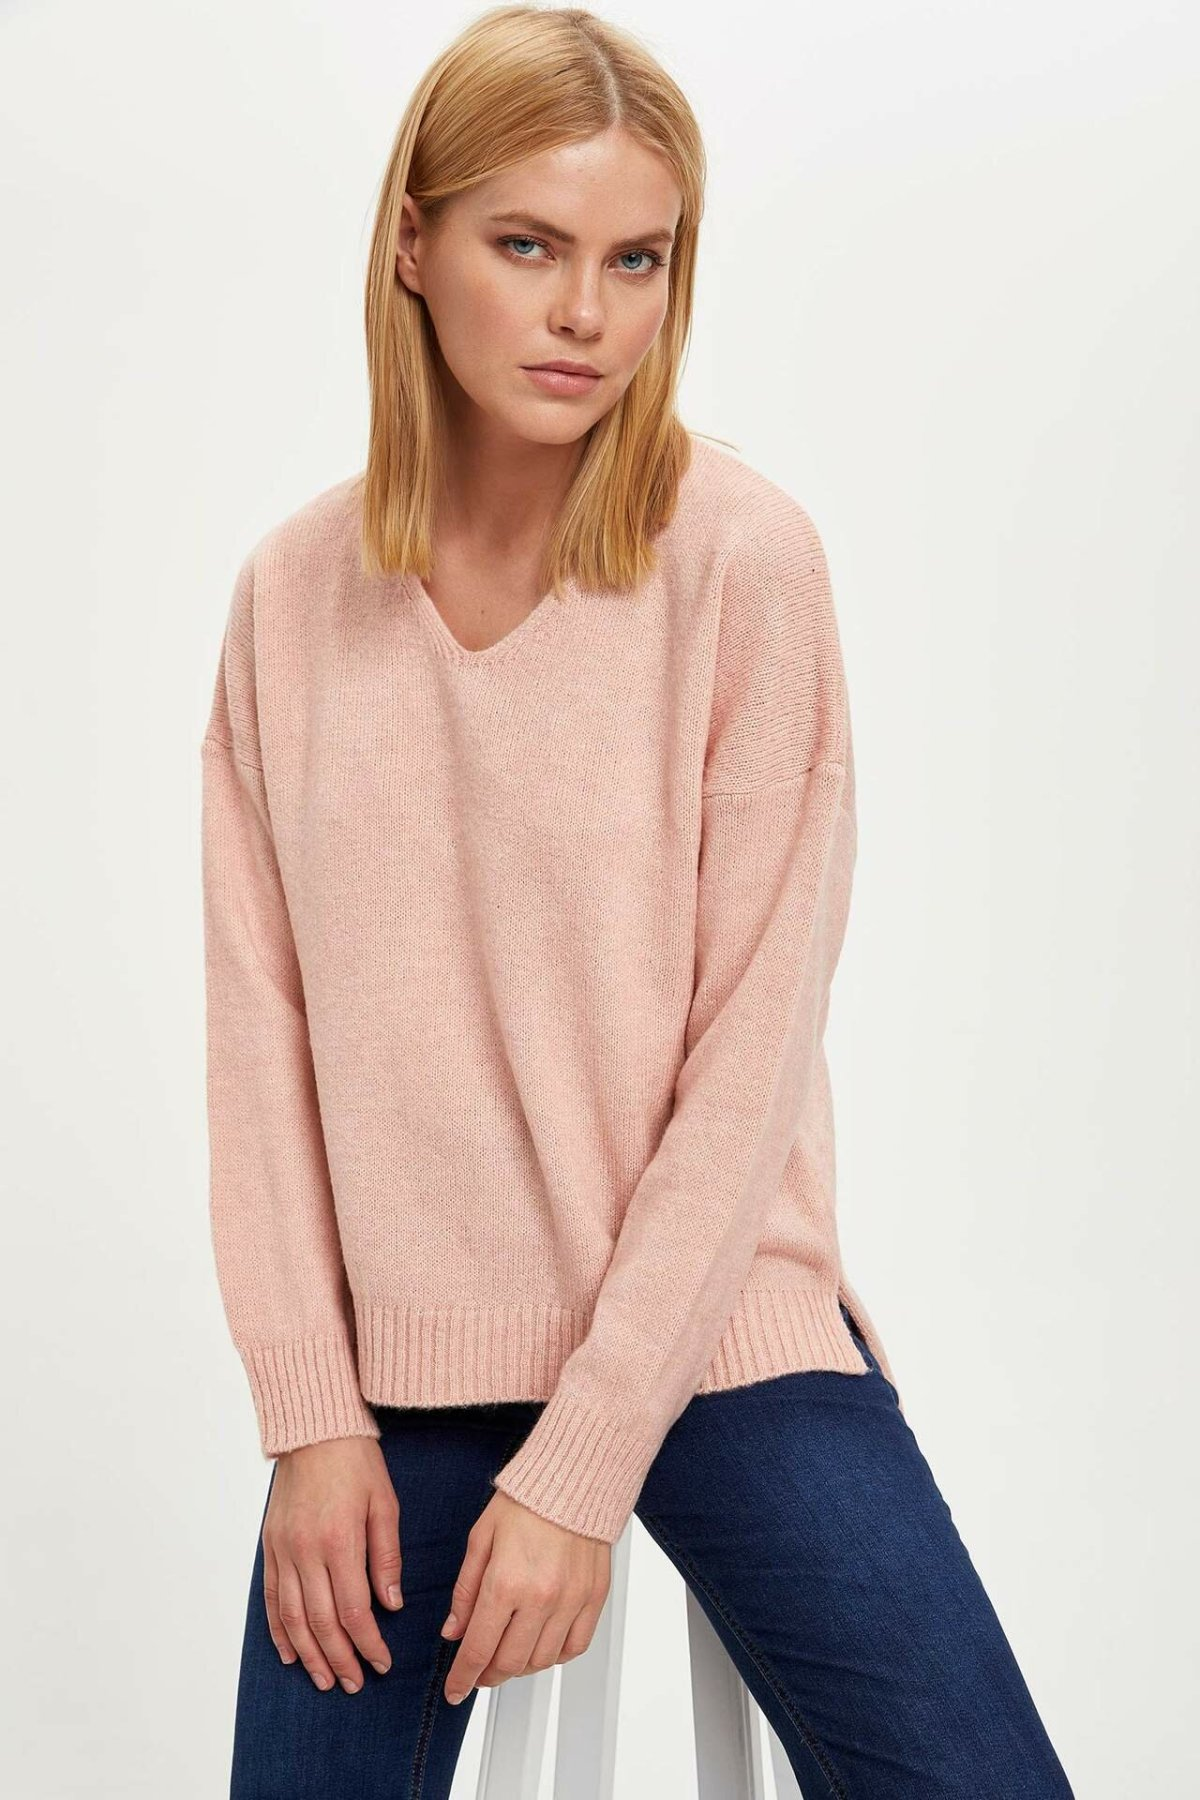 DeFacto Woman Knitted V-neck Pullover Women Pure Color Casual Long Sleeve Sweatshirts Female Tops Simple - M8797AZ19AU